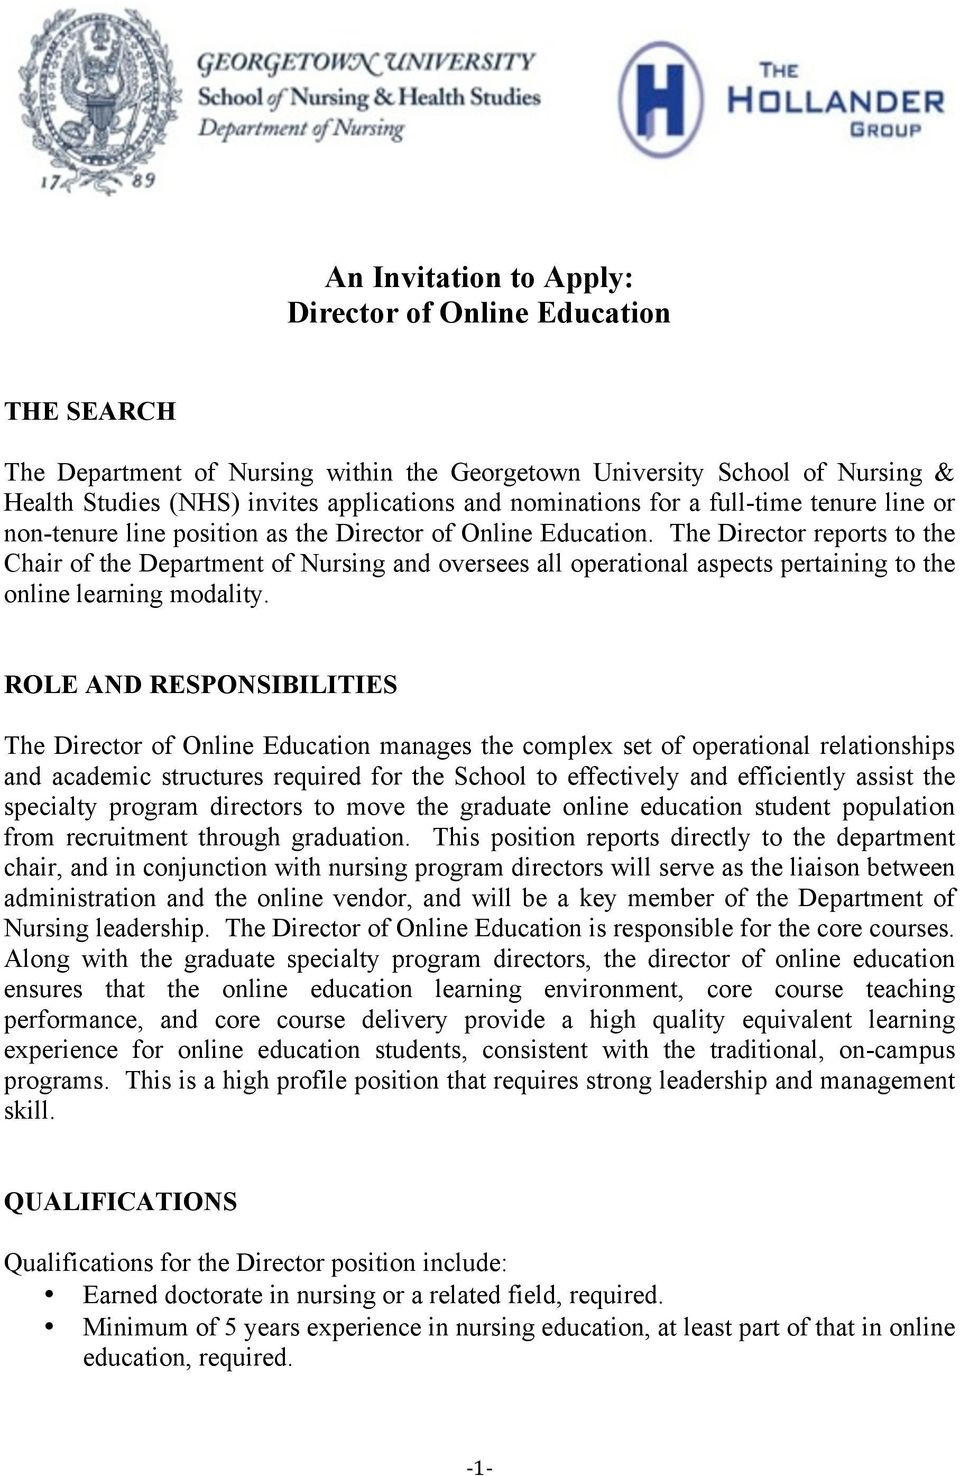 The Director reports to the Chair of the Department of Nursing and oversees all operational aspects pertaining to the online learning modality.